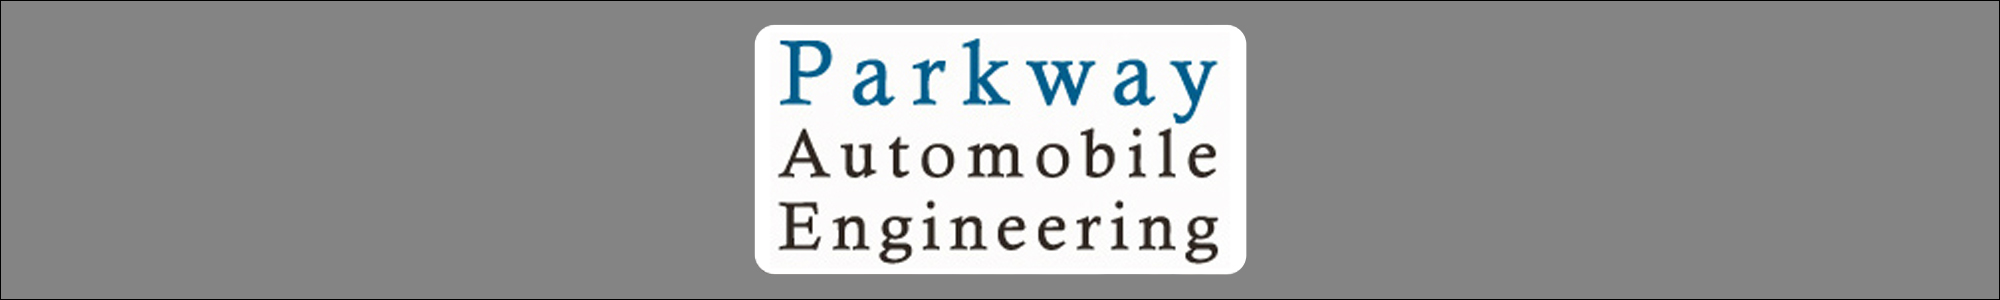 Parkway Automobile Engineering